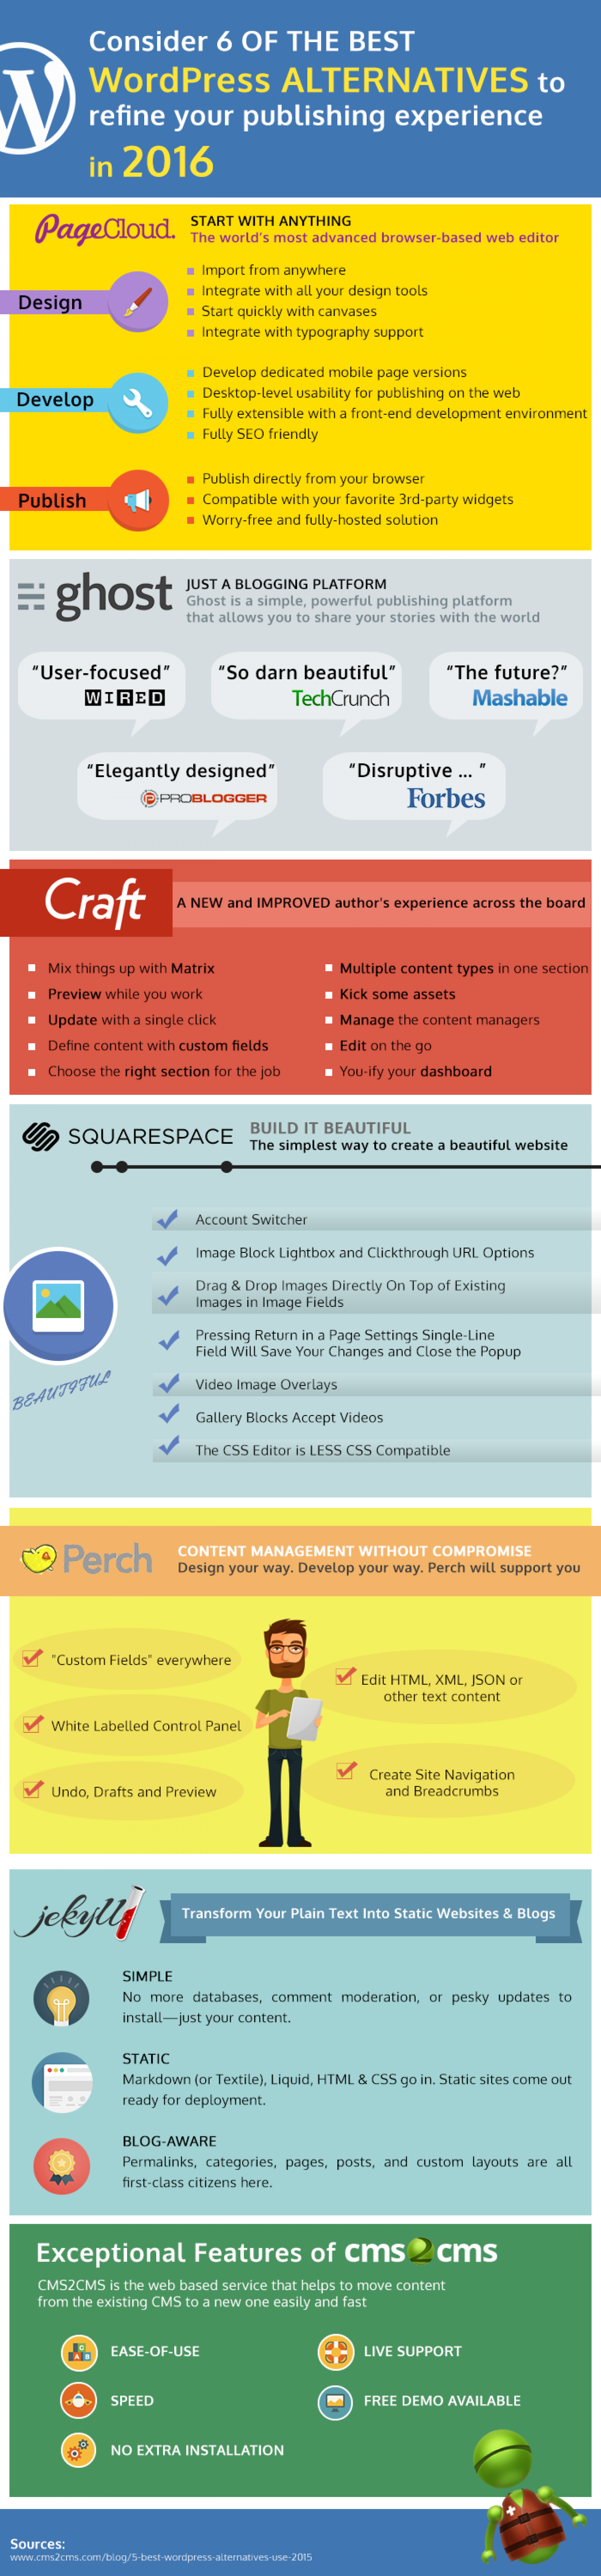 6 Best WordPress Alternatives to Use in 2016   Infographic